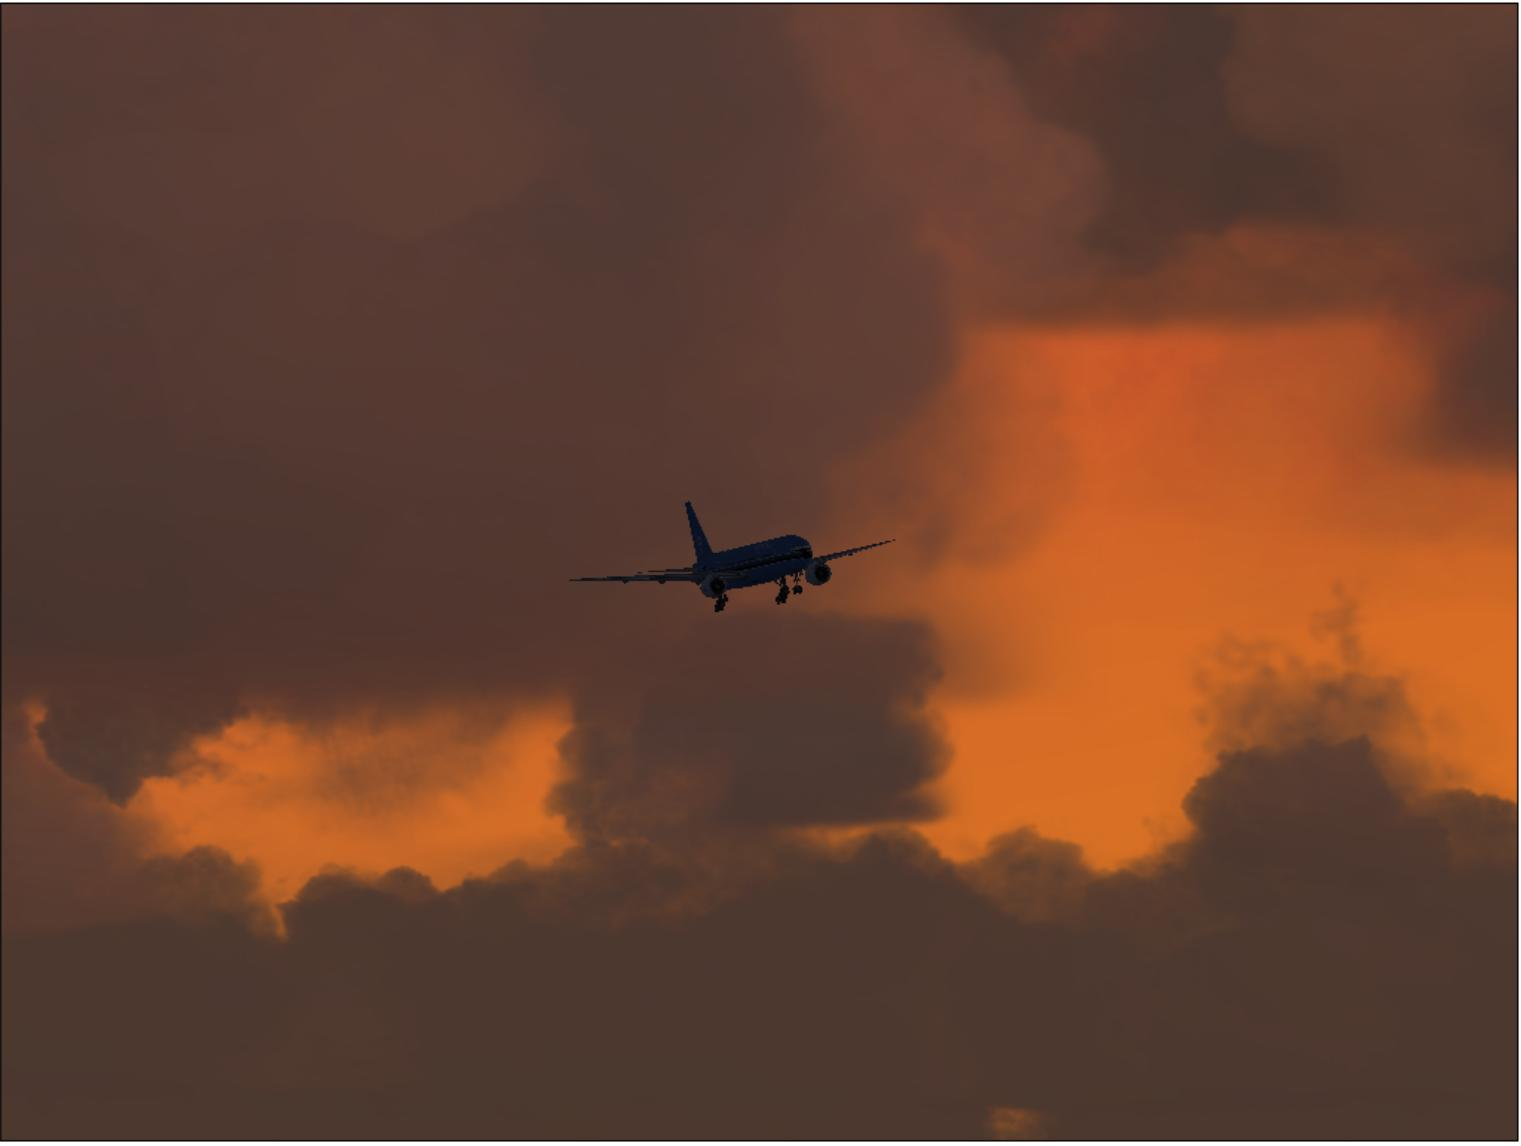 A wonderful sunset as a 777 comes in on approach at KDSM. *Nice Background* - Photo 3568